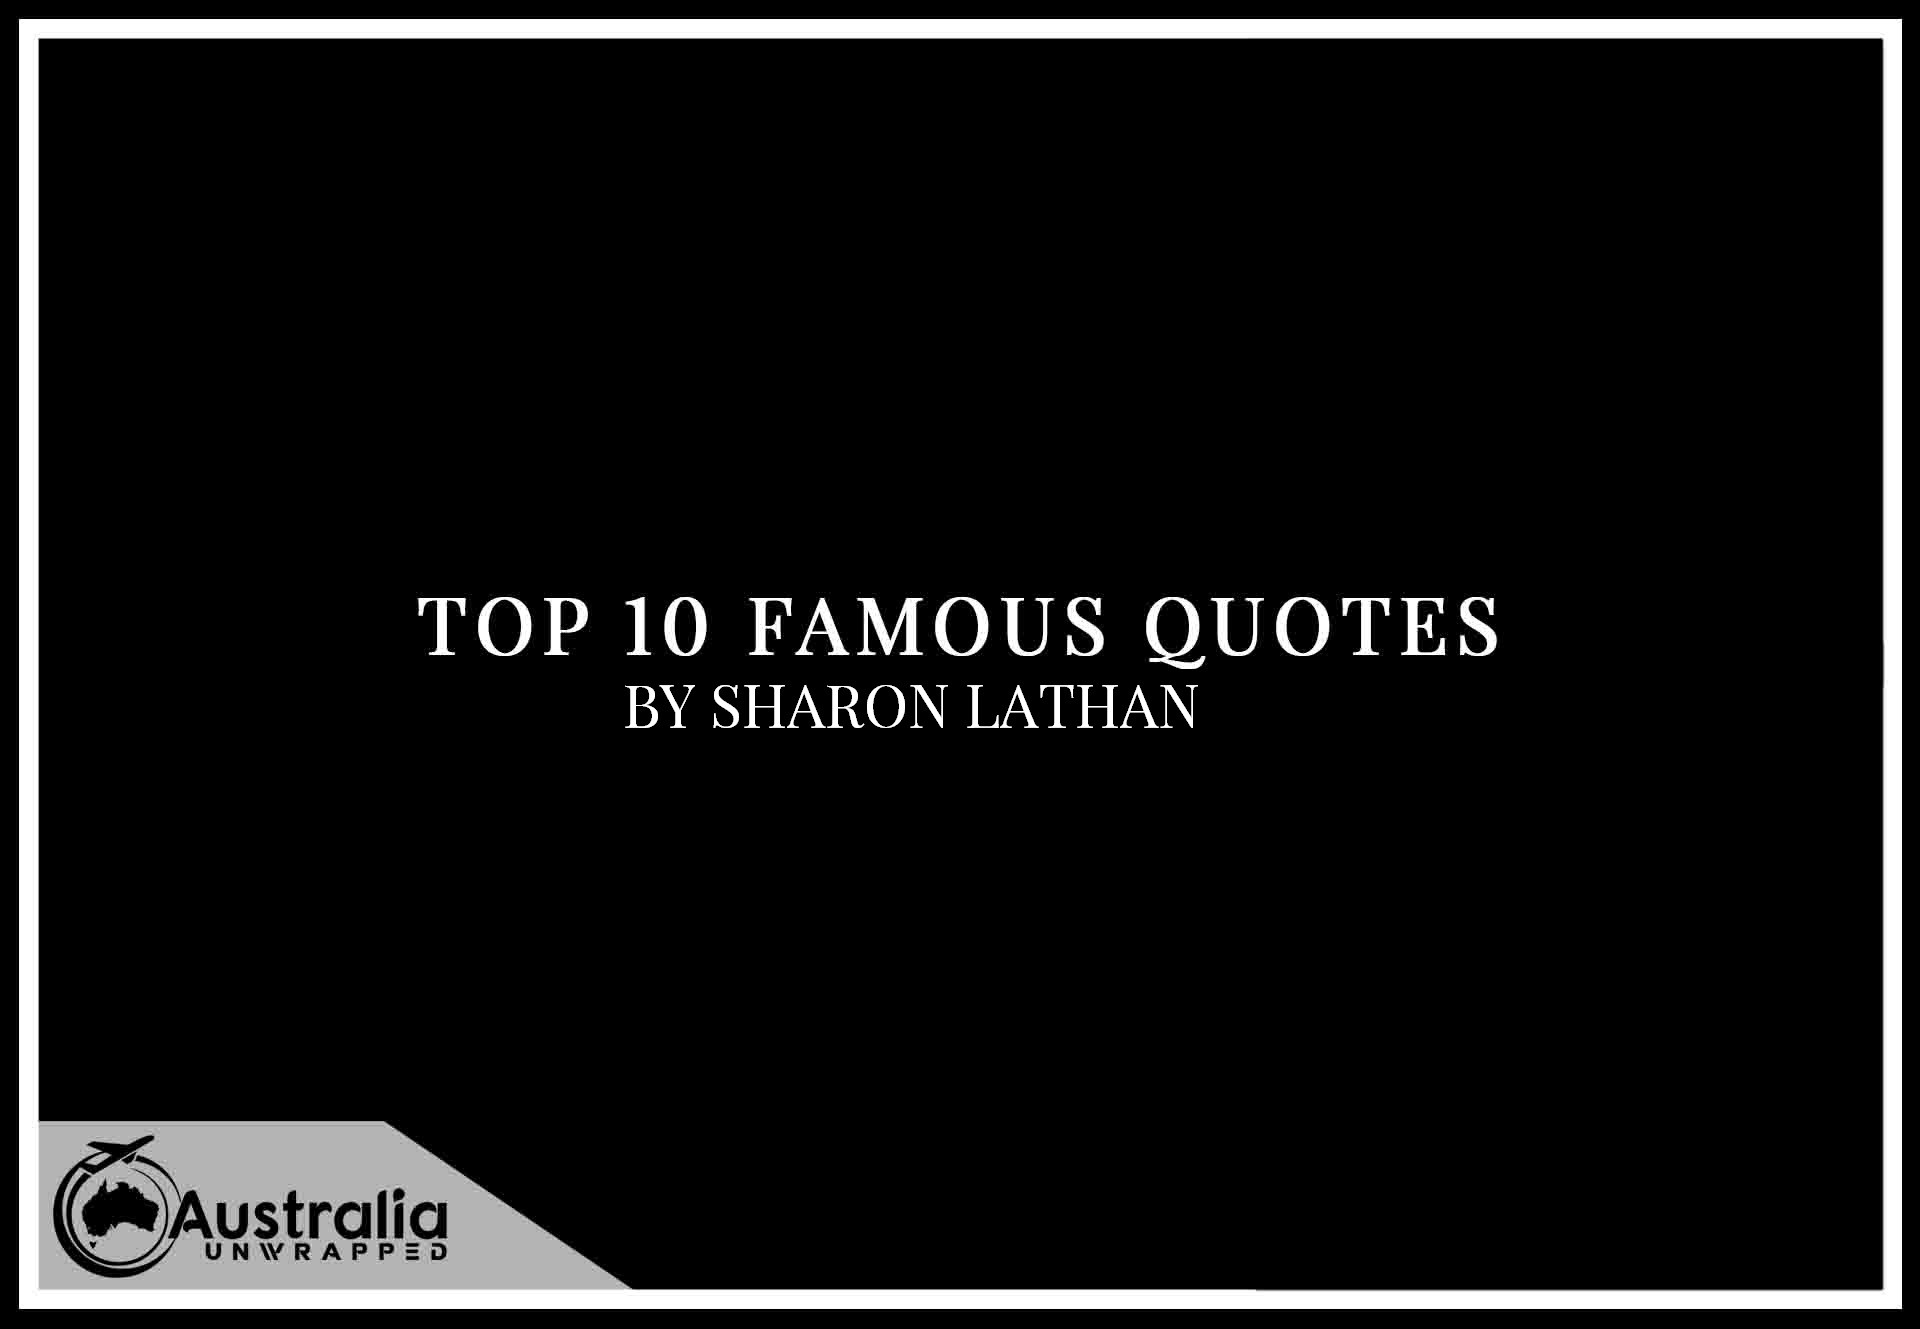 Top 10 Famous Quotes by Author Sharon Lathan